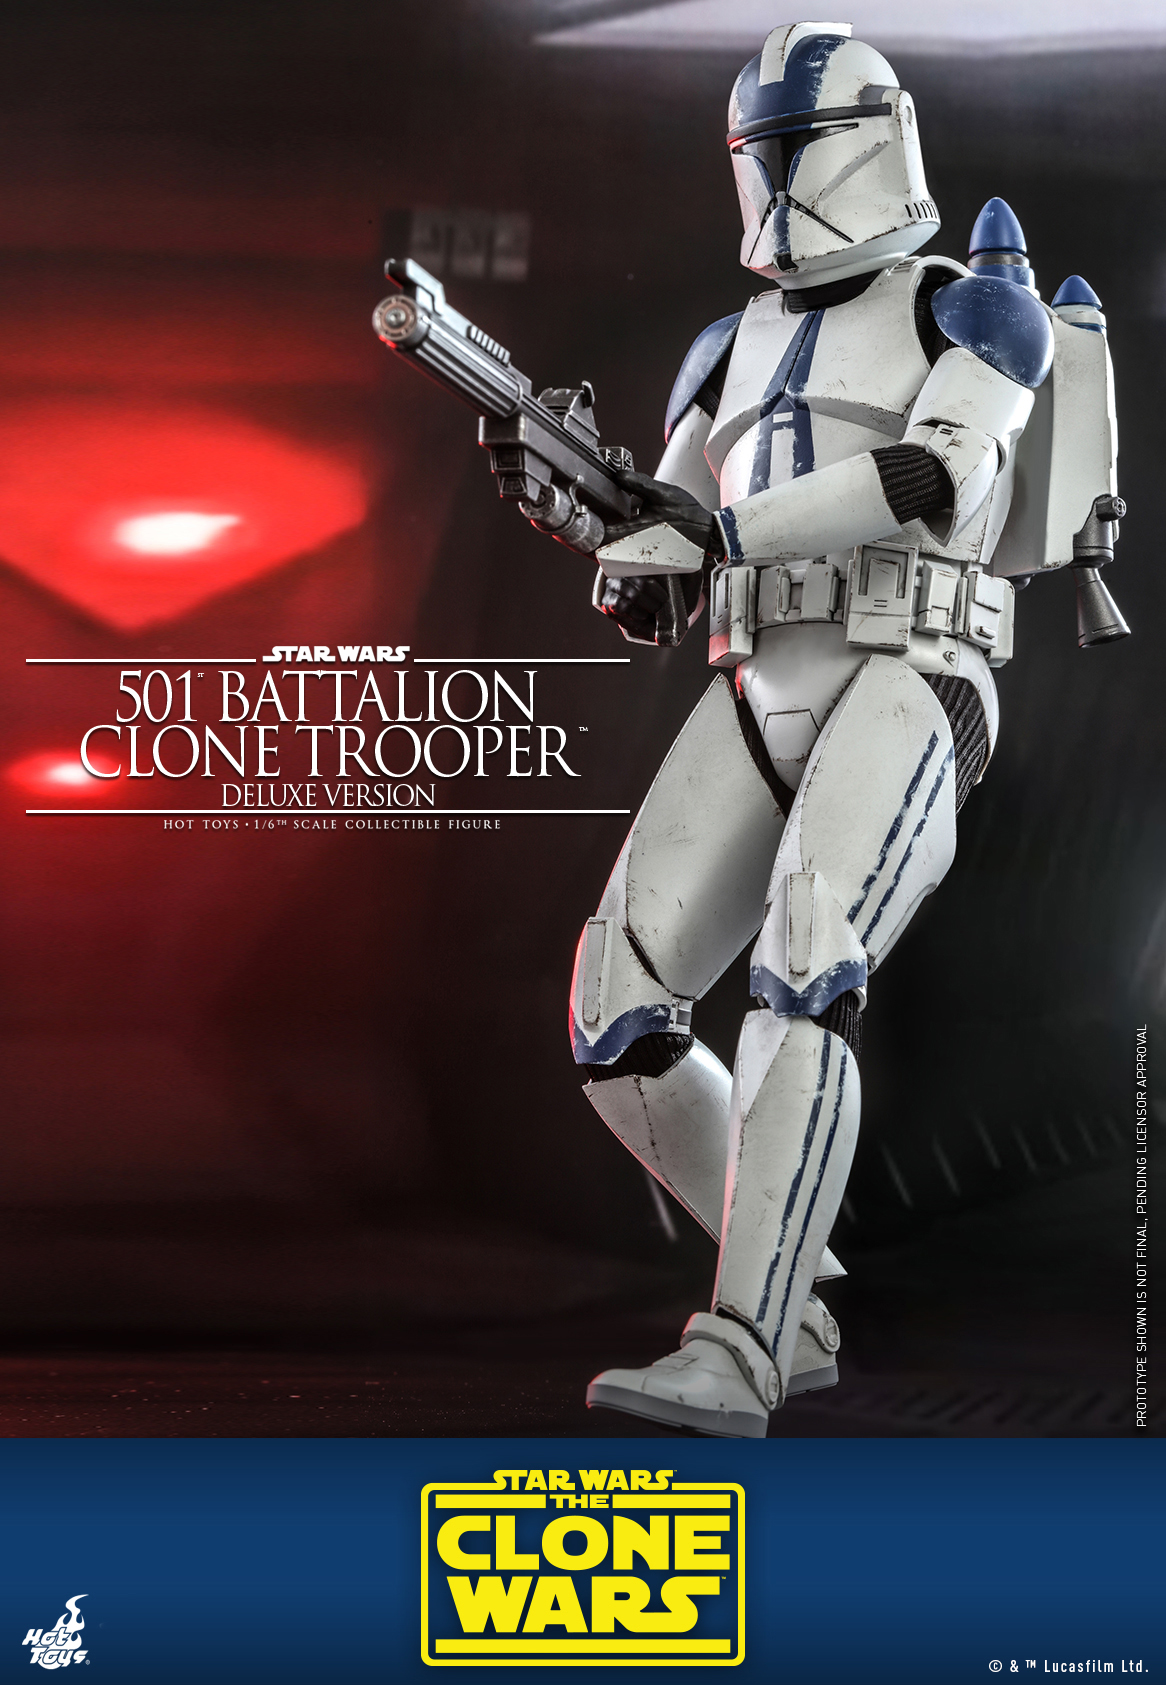 Hot Toys - SWCW - 501 Battalion Clone Trooper collectible figure (Deluxe)_PR5